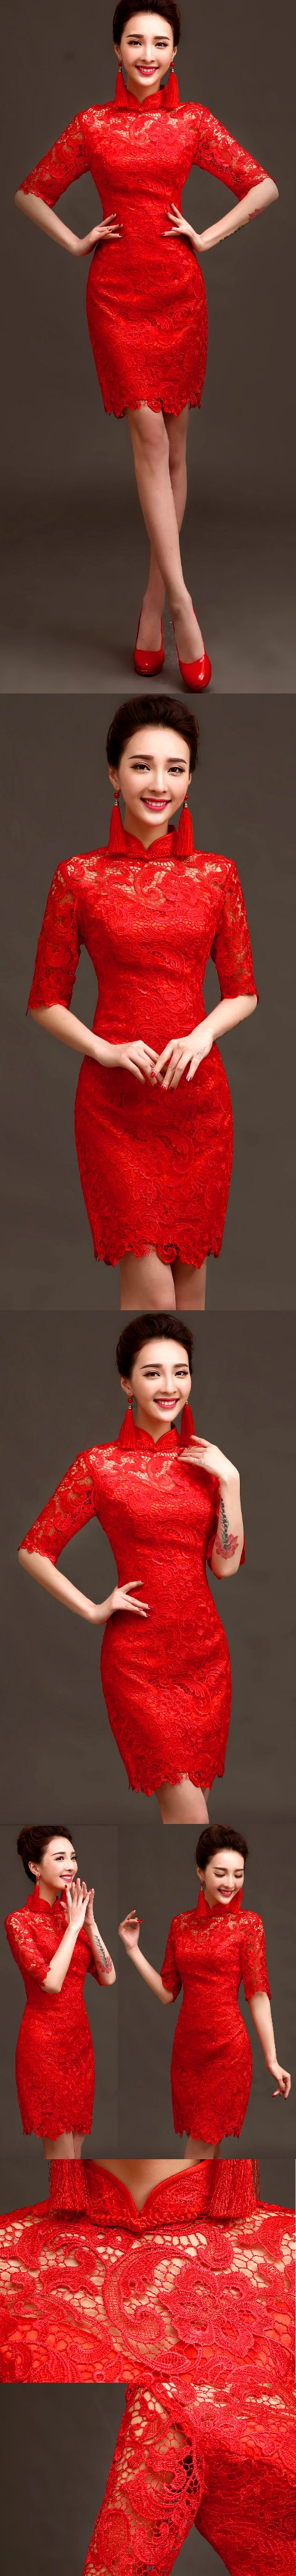 Elbow-sleeve Short-length Prom Cheongsam (RM)